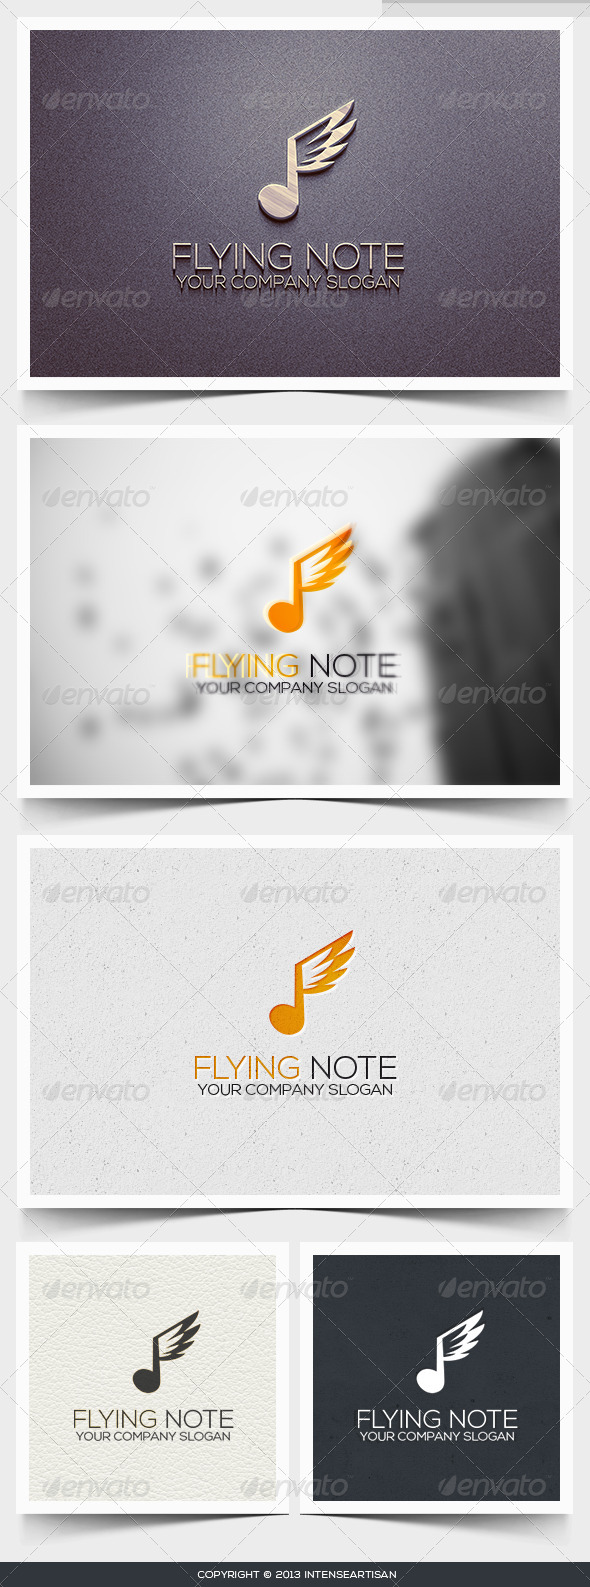 Flying Note Logo Template - Objects Logo Templates